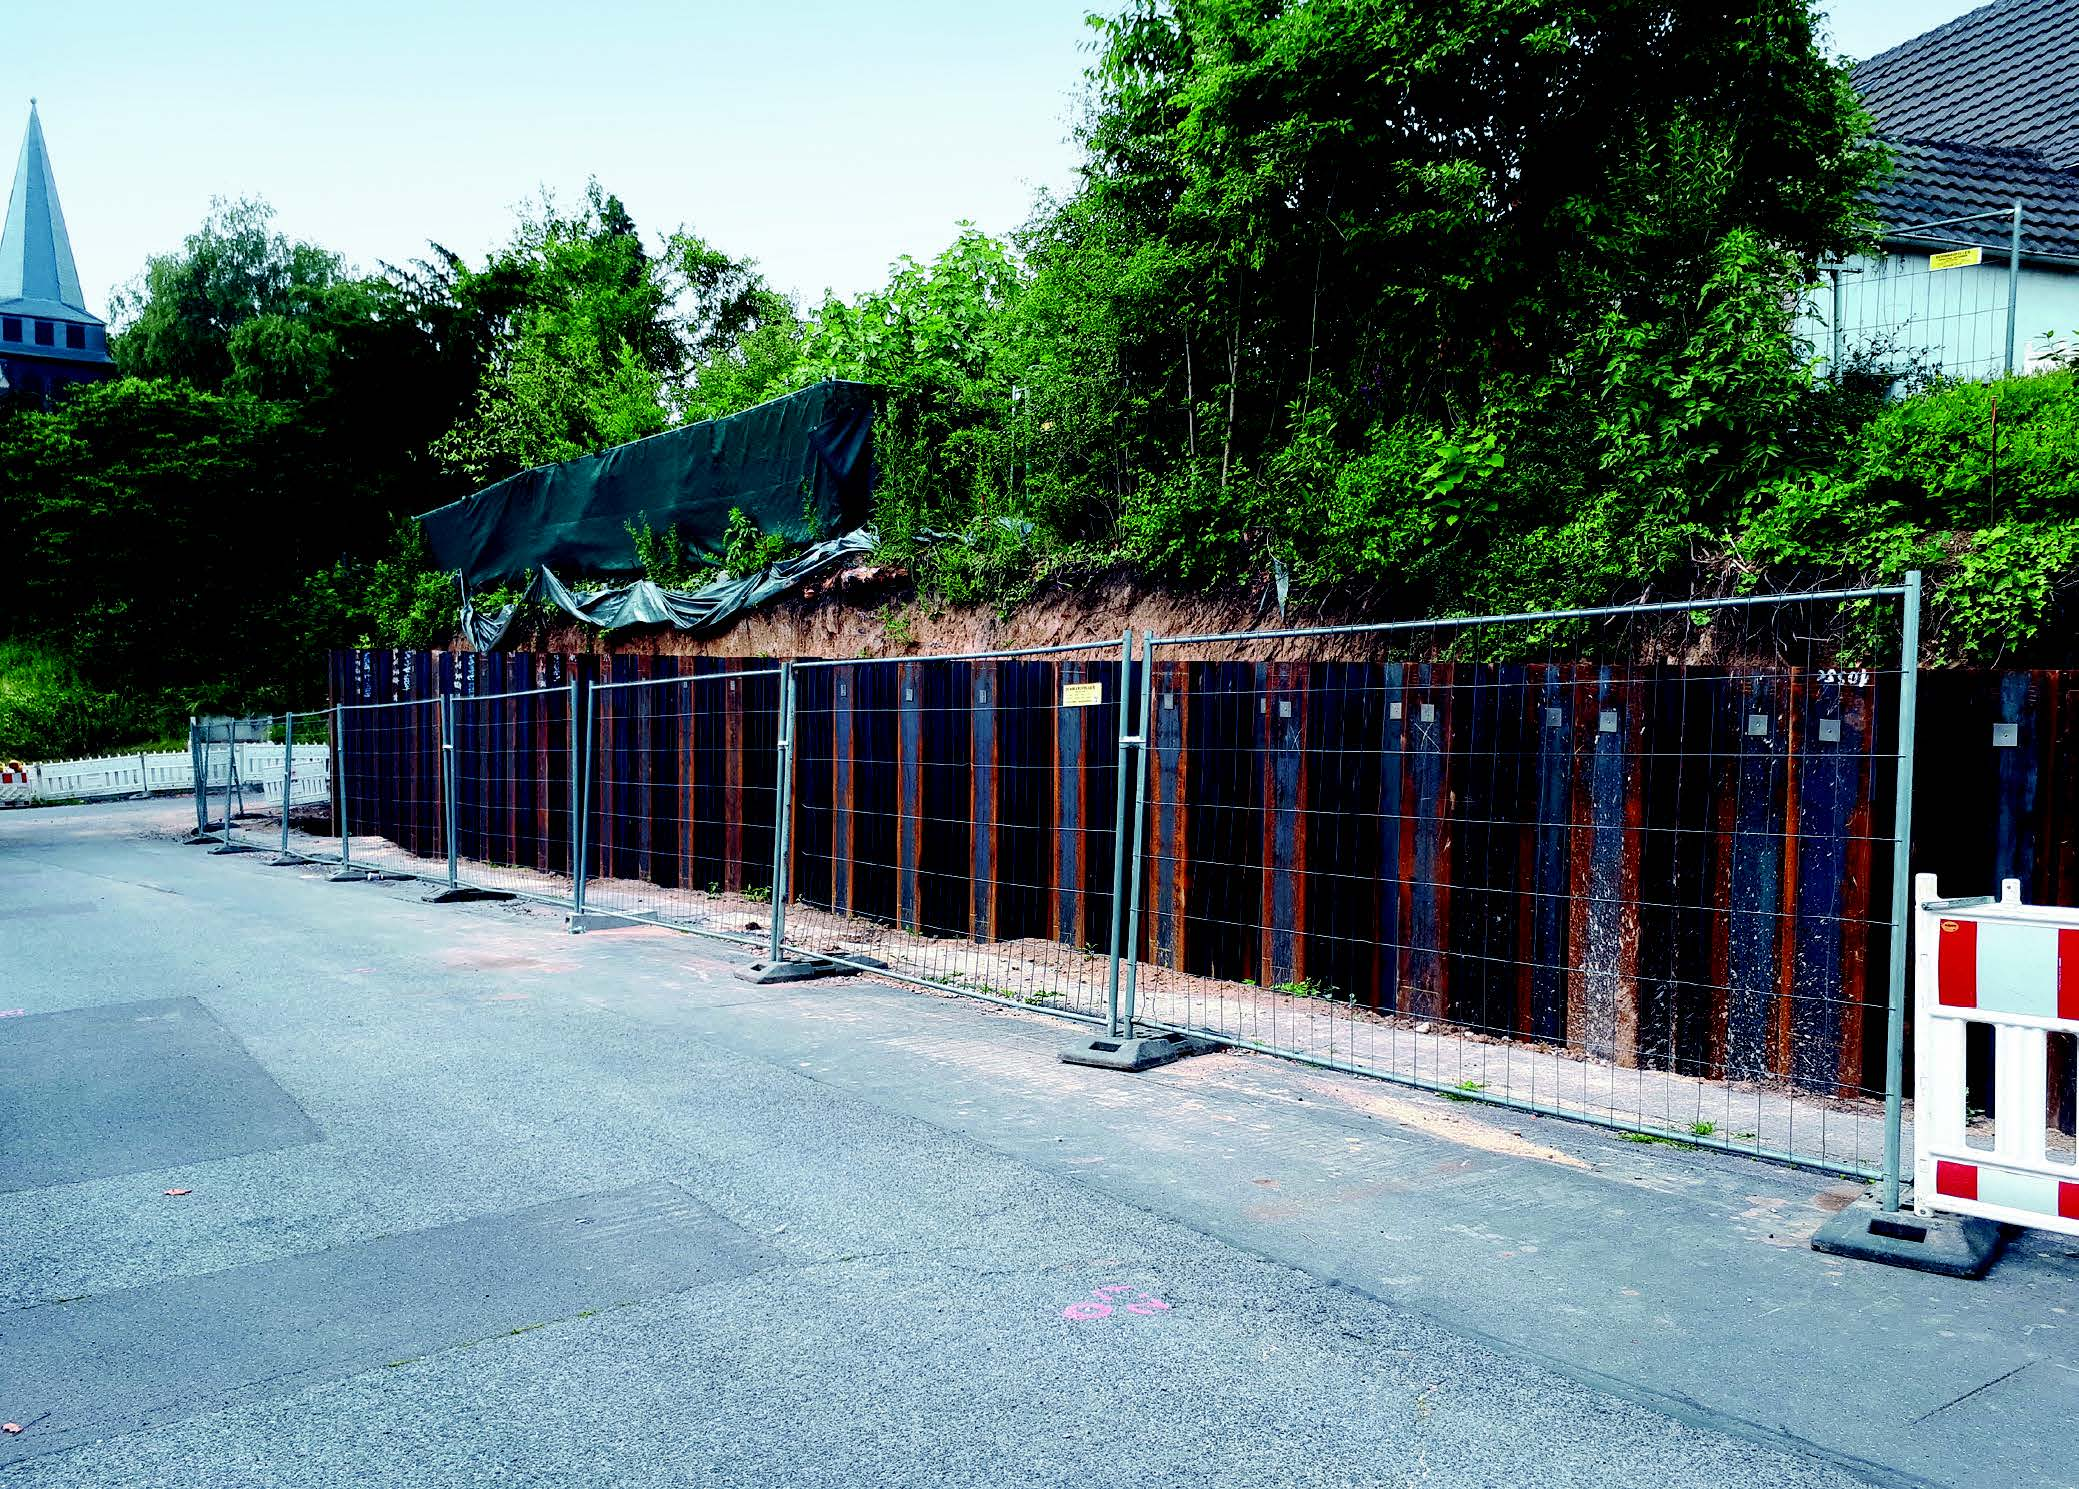 Construction of steel sheet pile wall for slope stabilization in Hürth